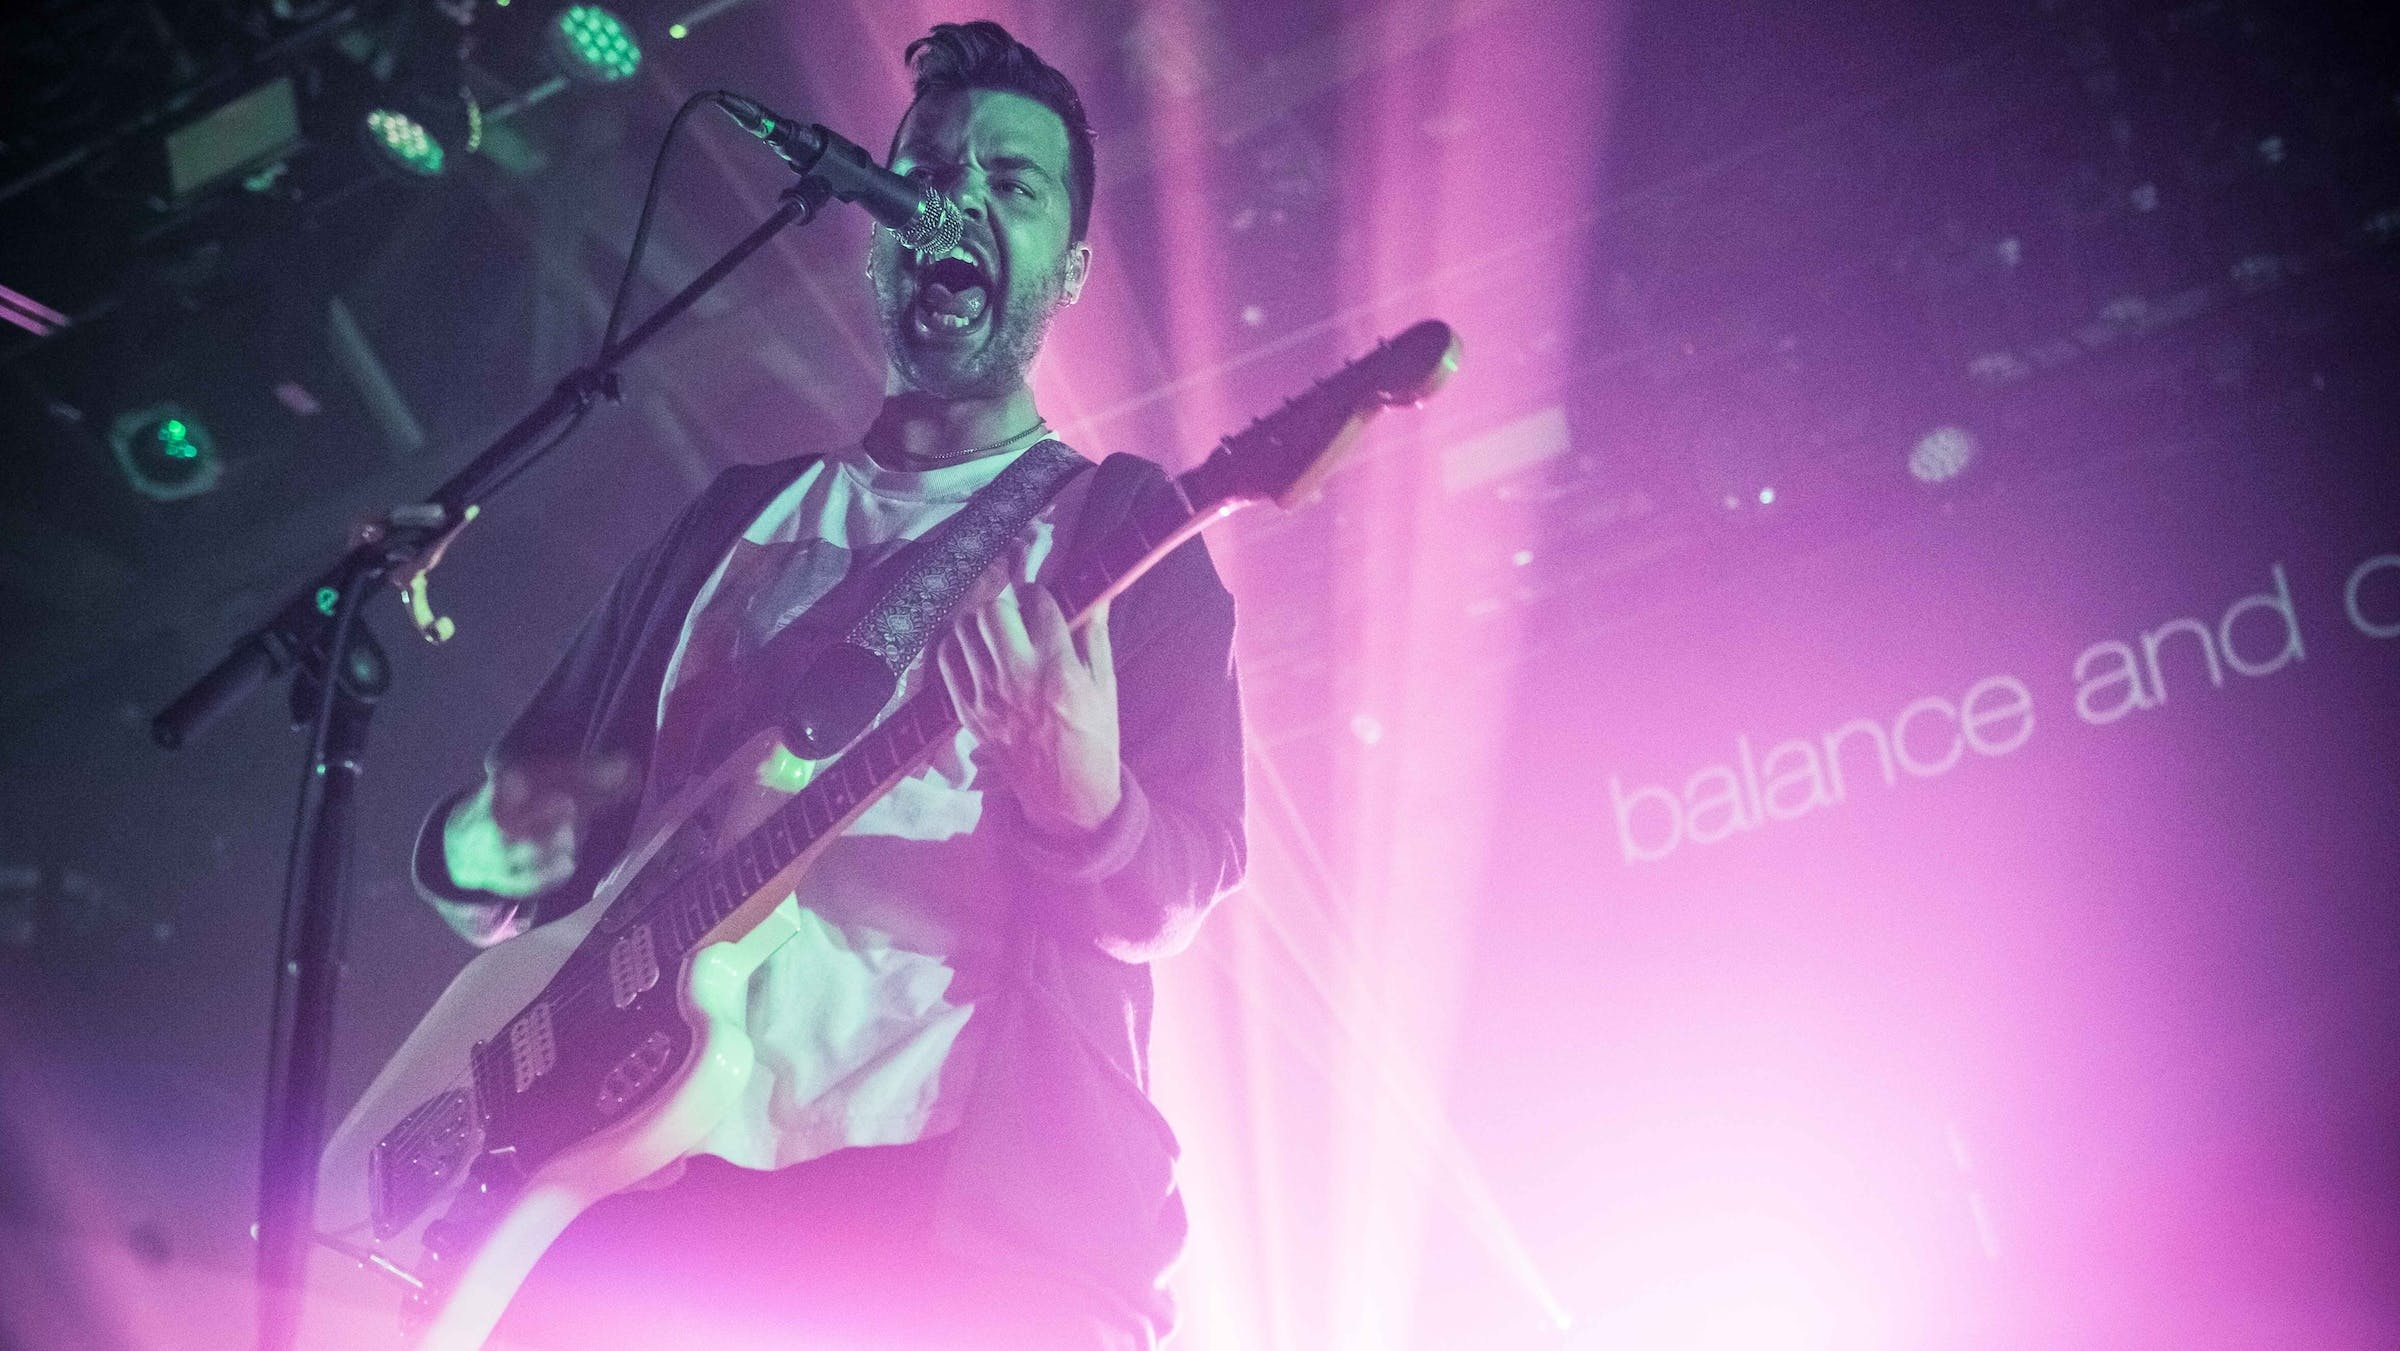 Balance And Composure Go Out On A Glorious, Crashing High Note